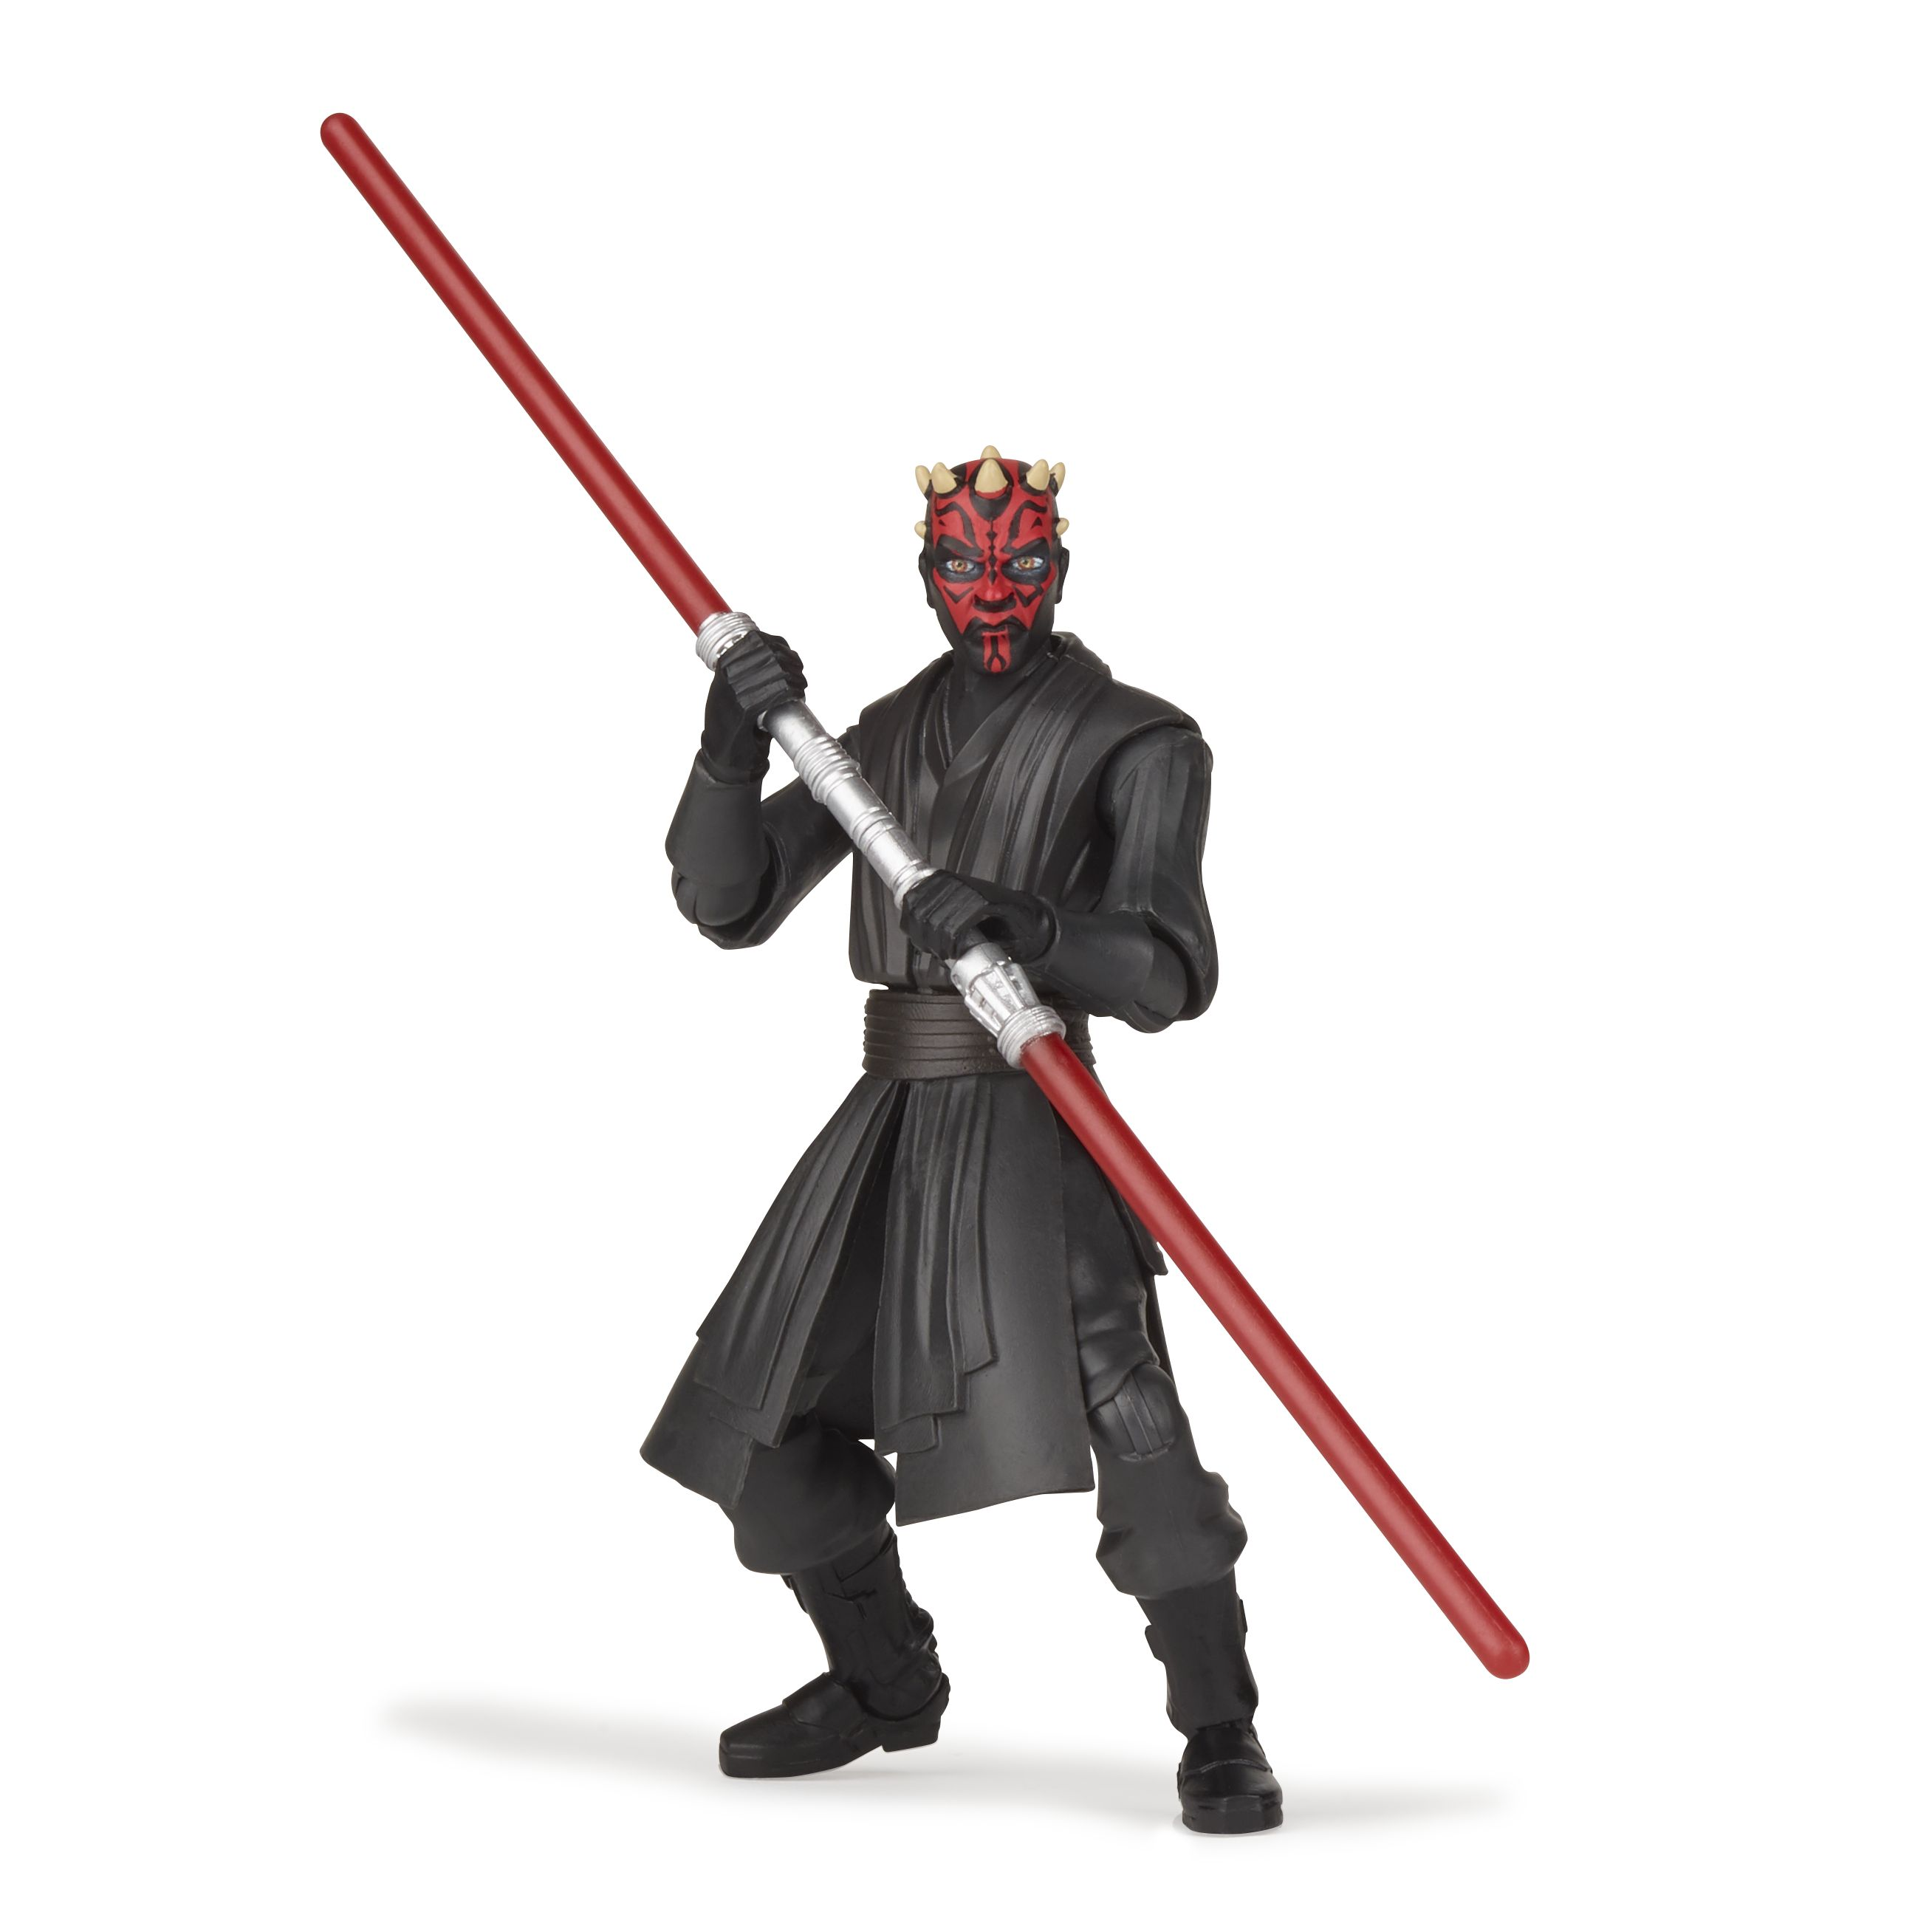 Galaxy of Adventures Darth Maul